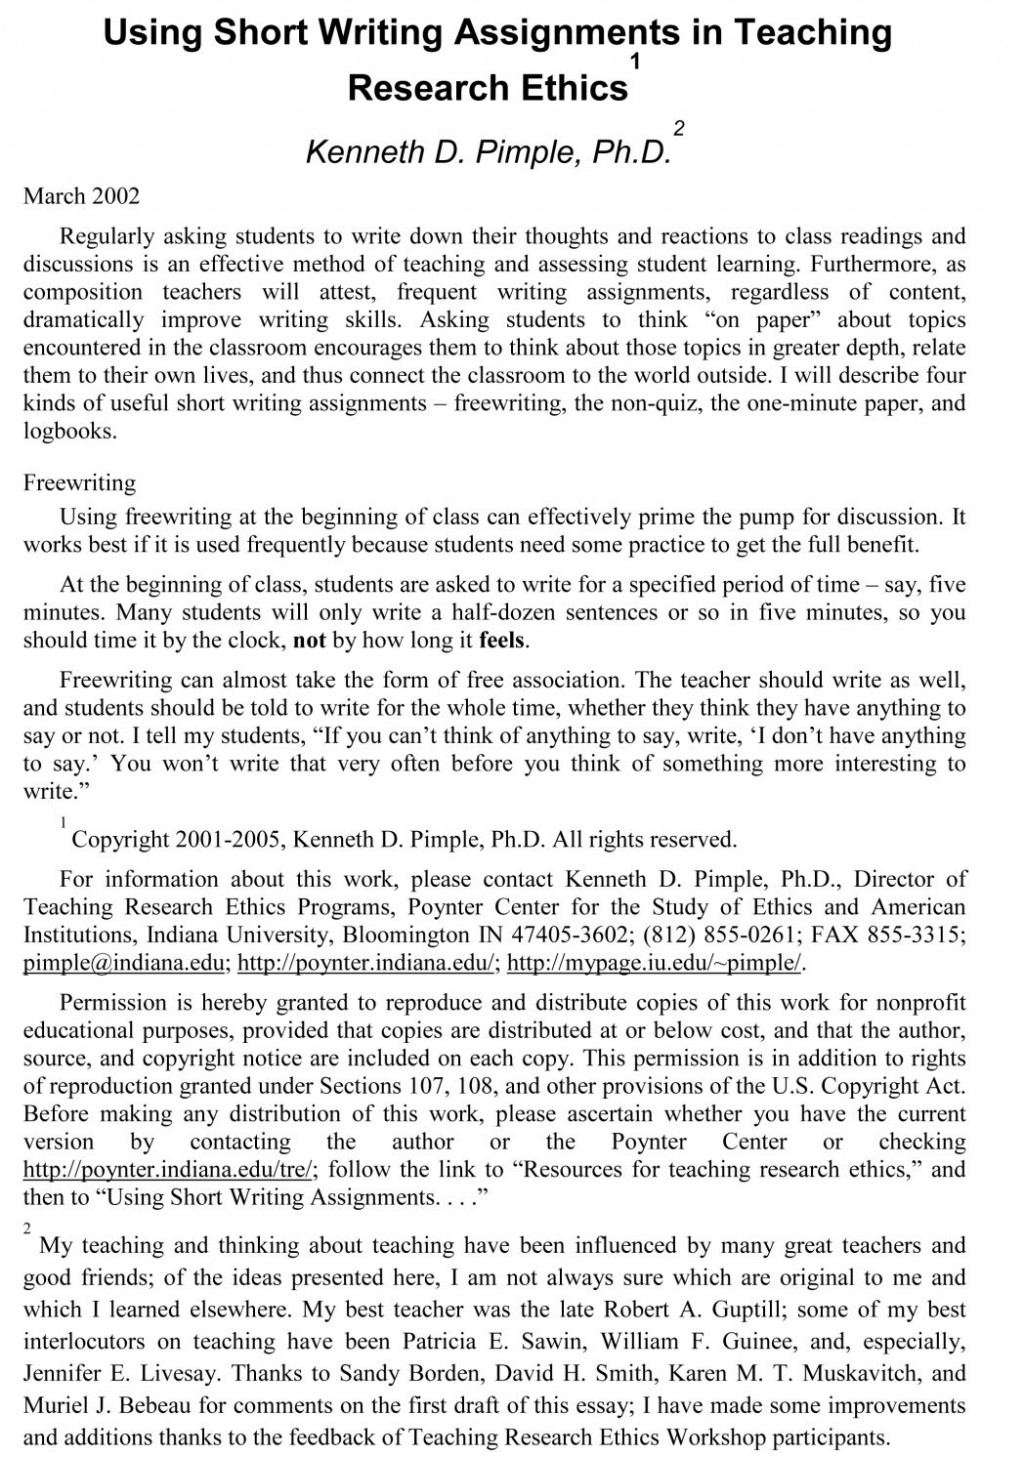 005 Why Do You Want To Teacher Essay Example I Become The Journey Is Everything By Sample Tea Writing On My Role Model In Kannada Ideal Telugu Hindi Day Teachers Impressive Be A Pdf Would Large